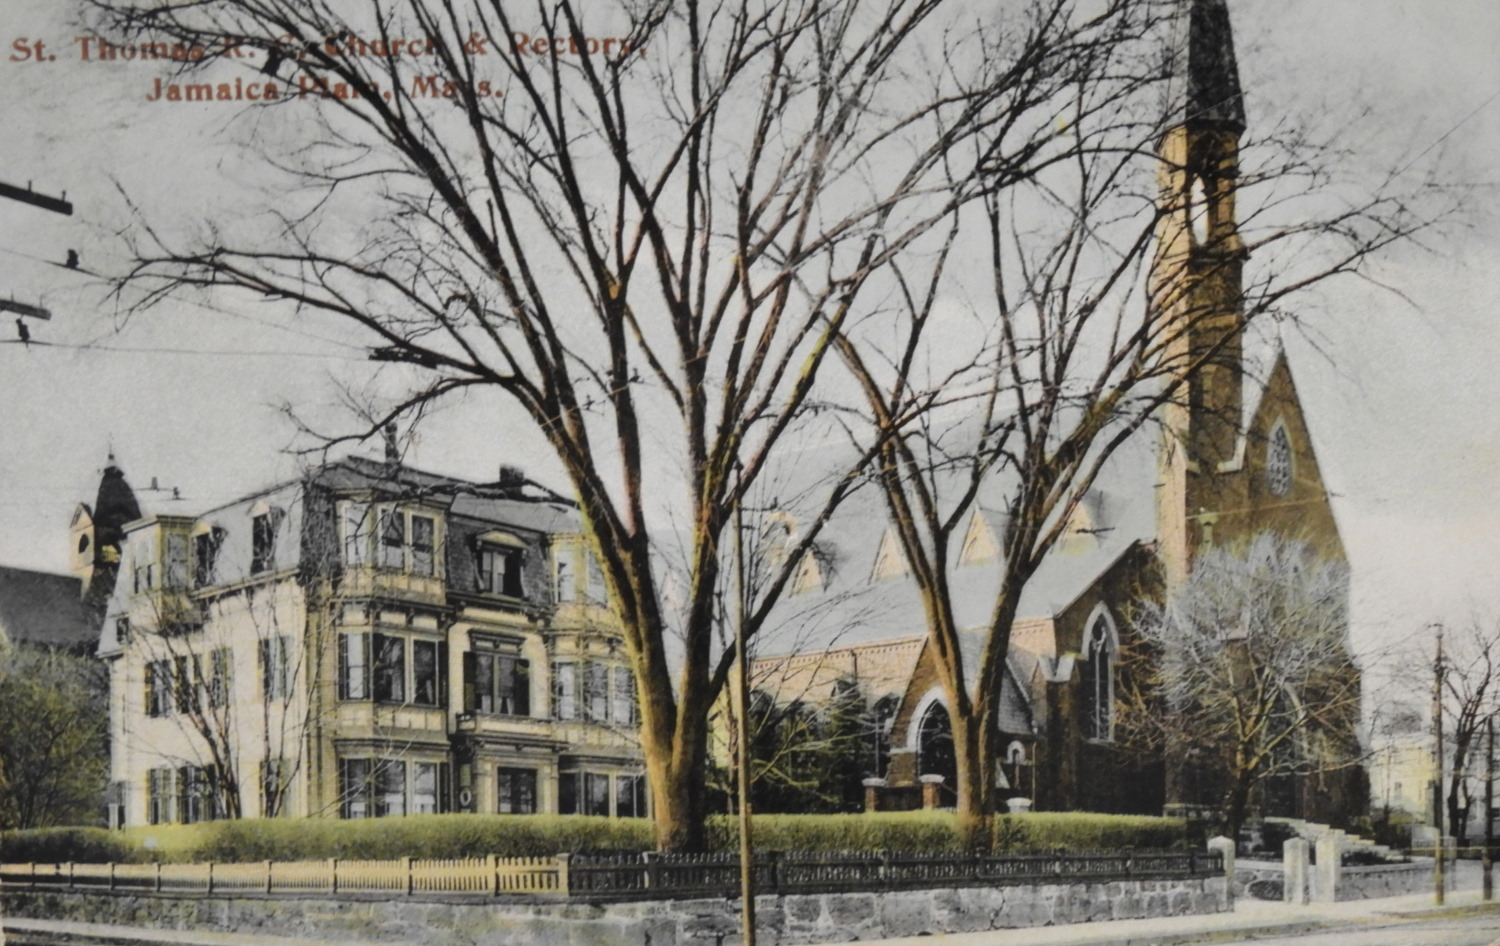 Rectory and Church about 1910 with Pope Leo XIII School in the background. Postcard from the Archives of the Archdiocese of Boston.